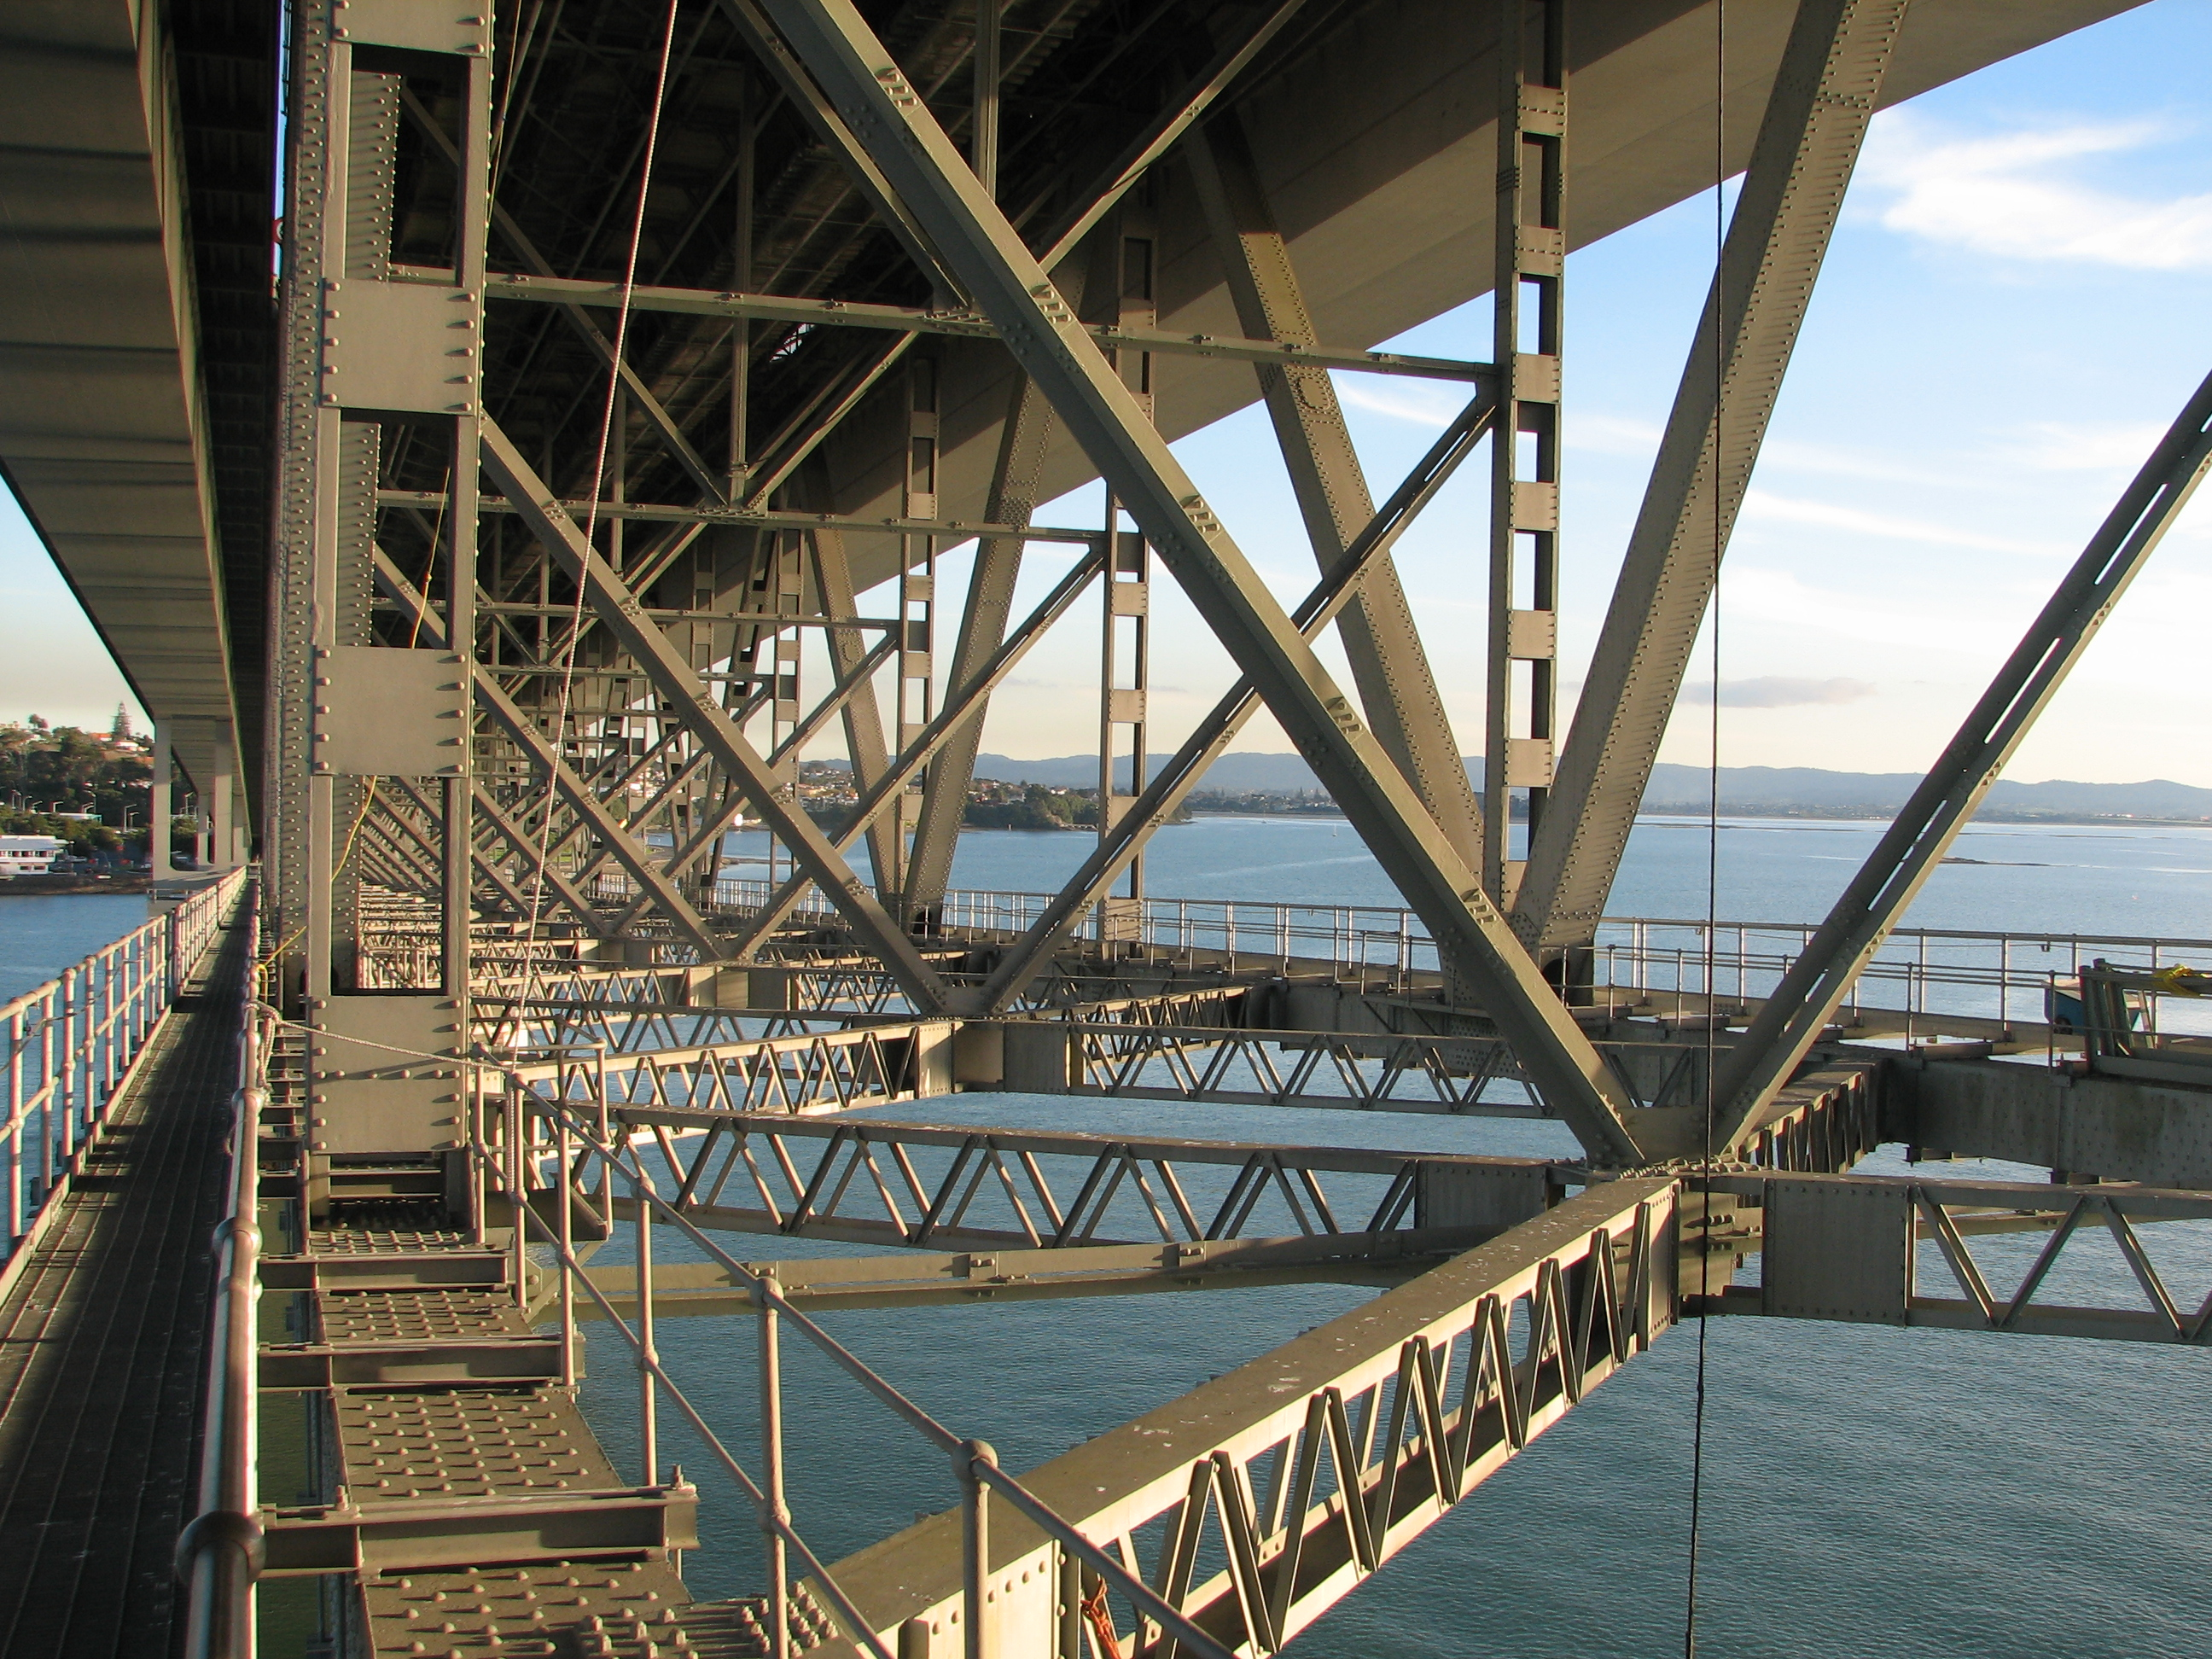 Below_Auckland_Harbour_Bridge_Hossen27.jpg